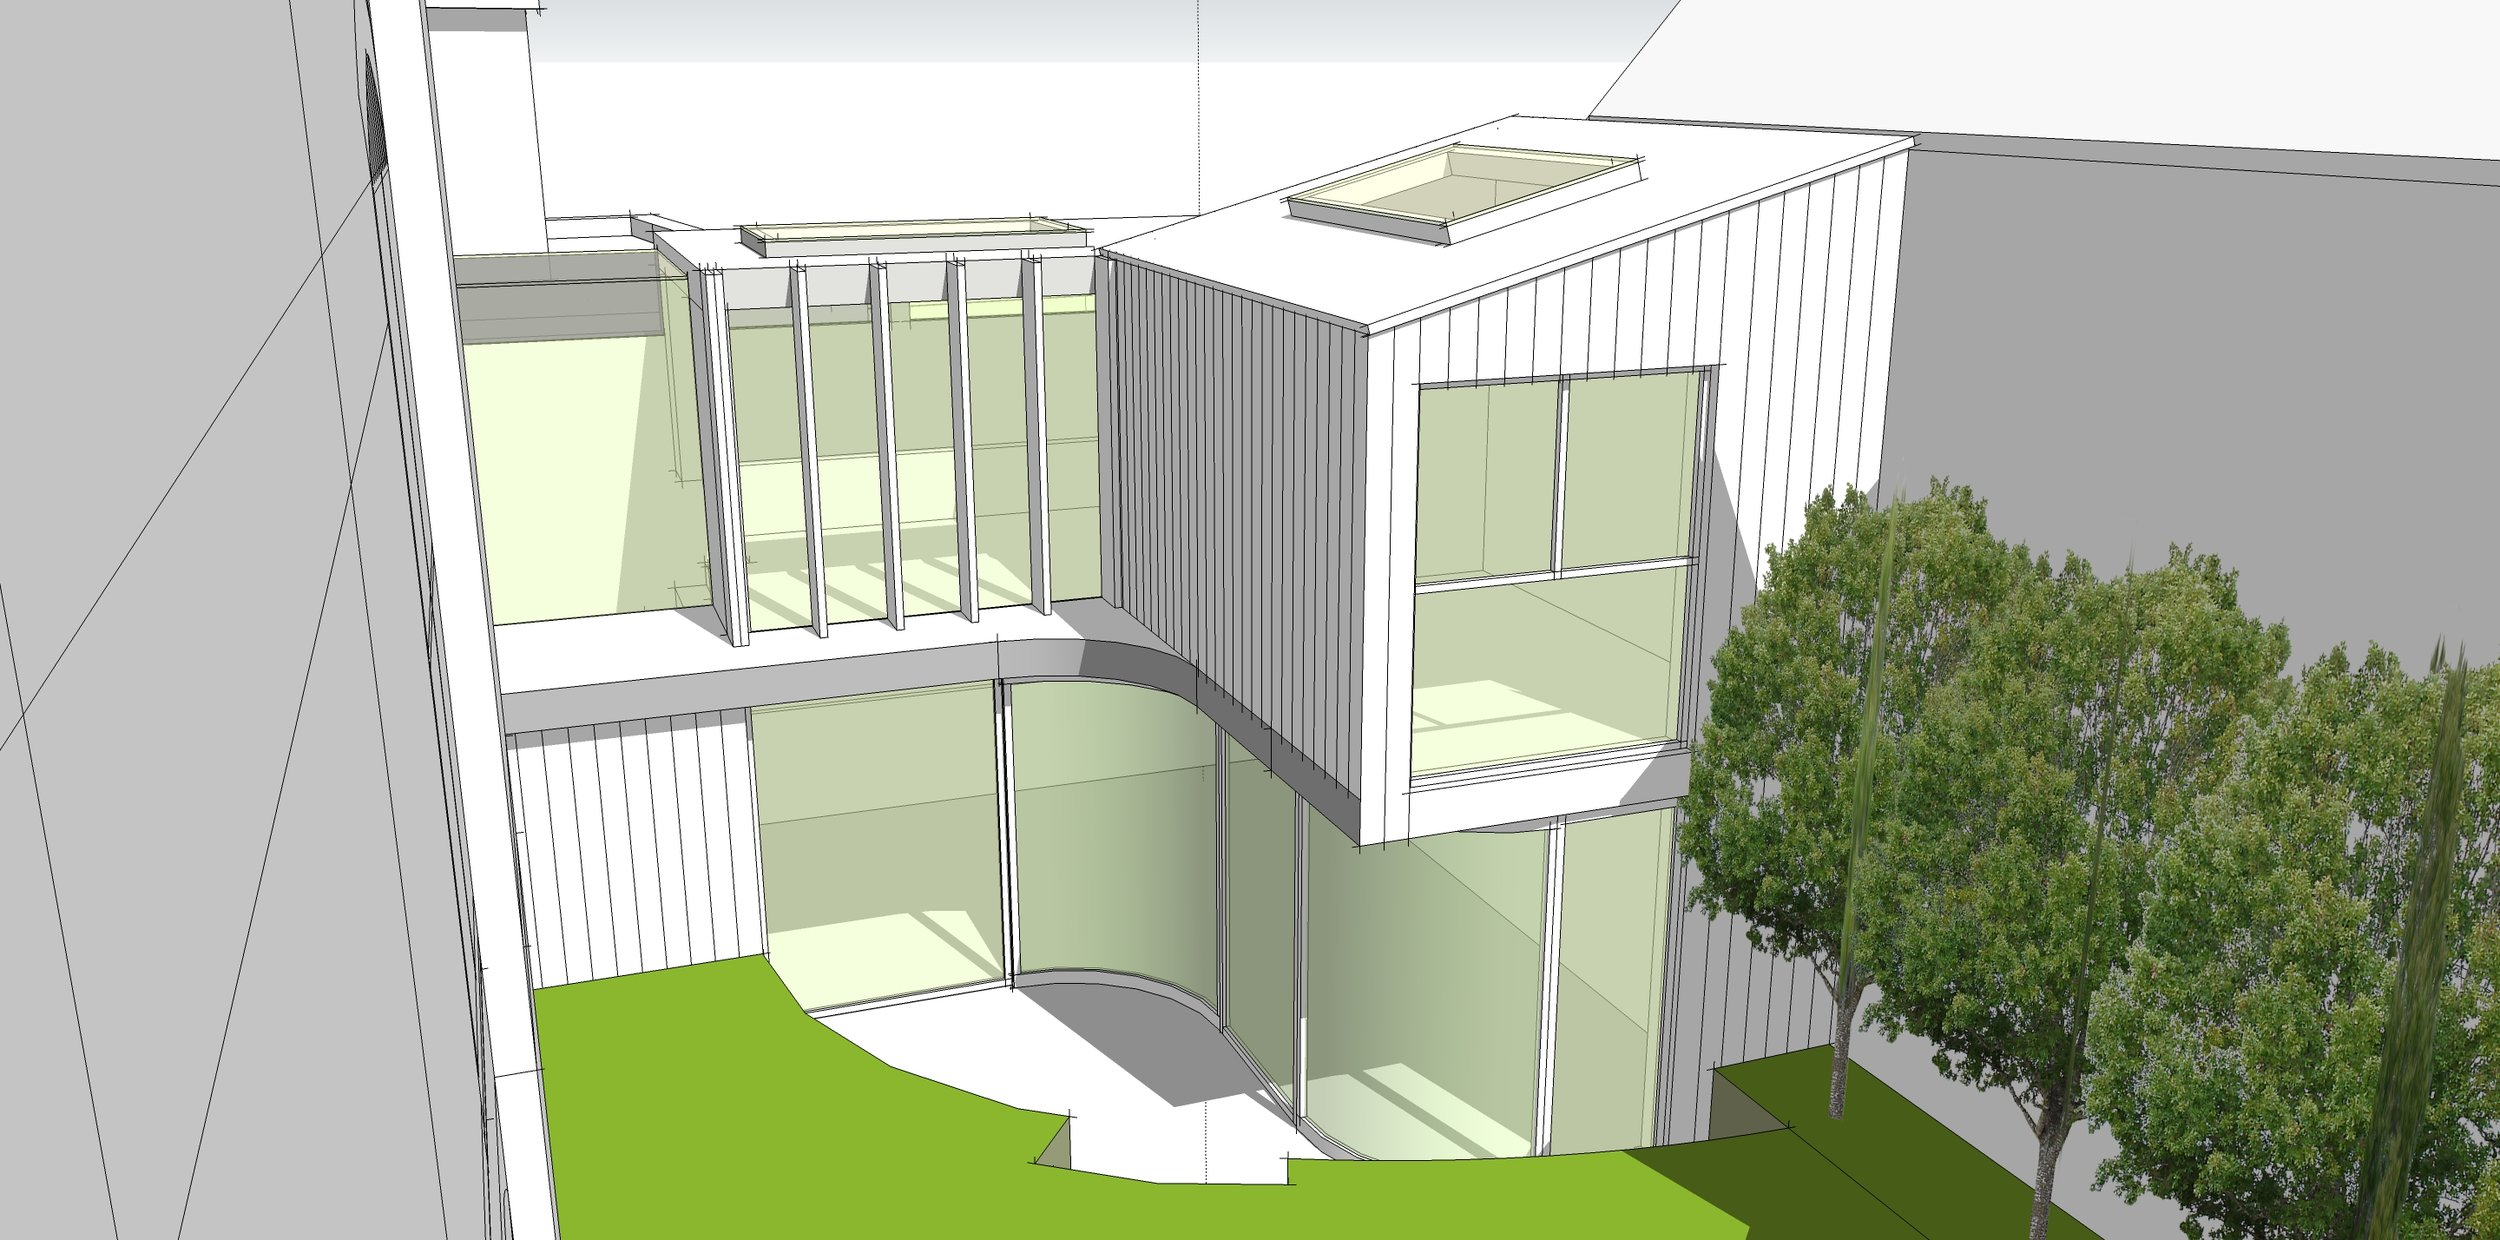 3D Concept model to accompany a planning application for a two-storey extension in West Wimbledon Conservation Area